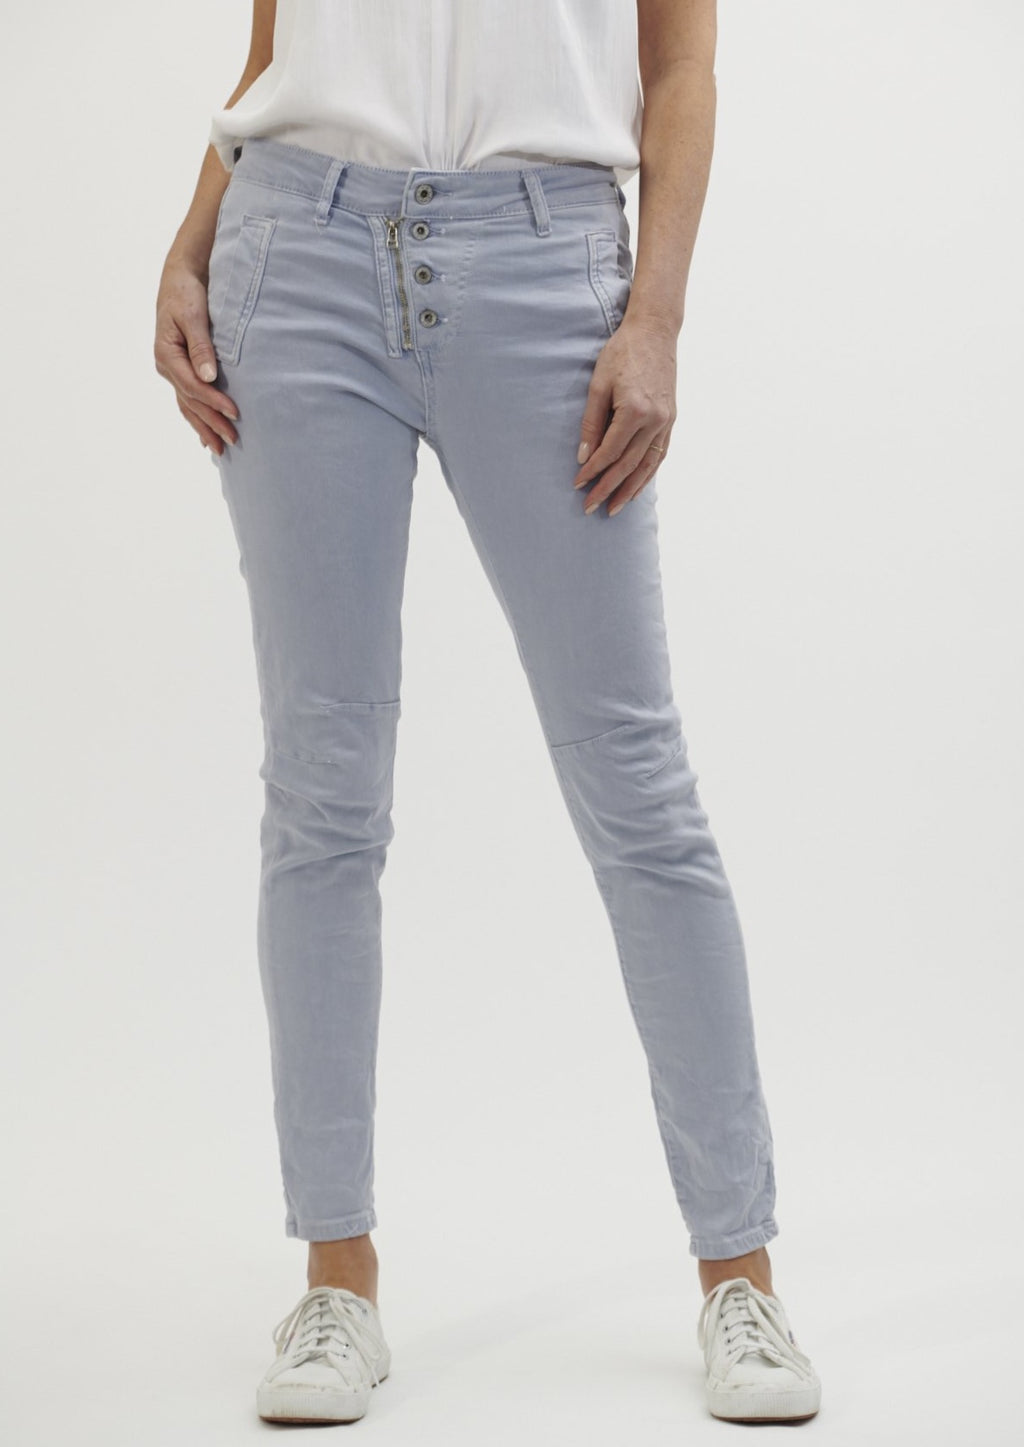 Italian Star Buttons Jeans - Ice Blue  You'll love these Italian star button jeans for their versatility, style and comfort   Your favourite everyday jean that can be dressed up or down.  Features:   Mid-rise Slim leg Zip and button fly  Side pockets Zip back pockets Seam detail at knee Designed to fade